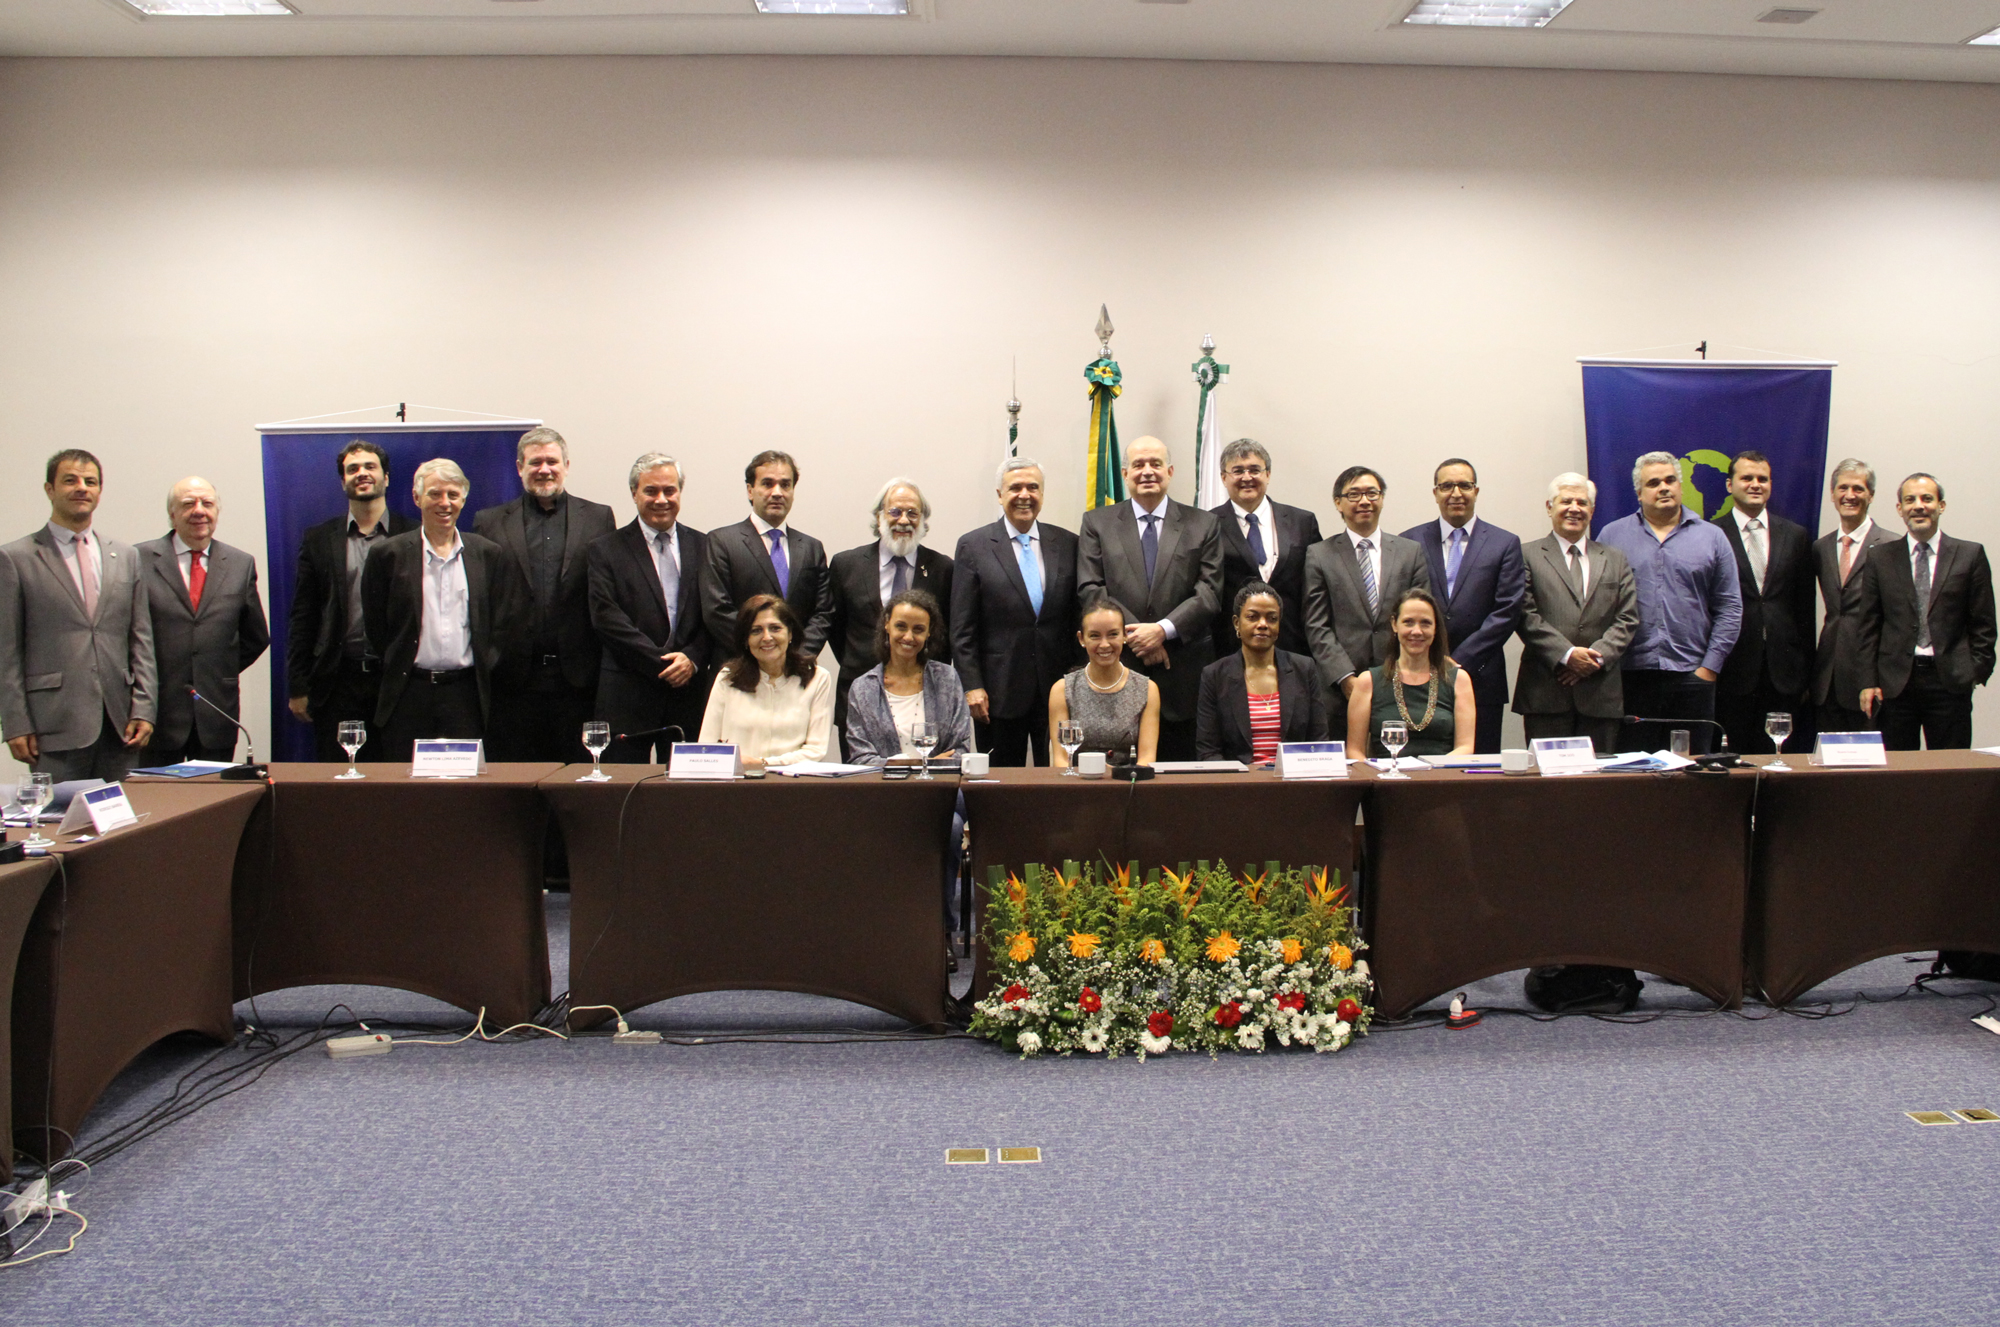 First meeting of the 8th World Water Forum International Steering Committee (ISC), Brasilia, 2-3 May 2016